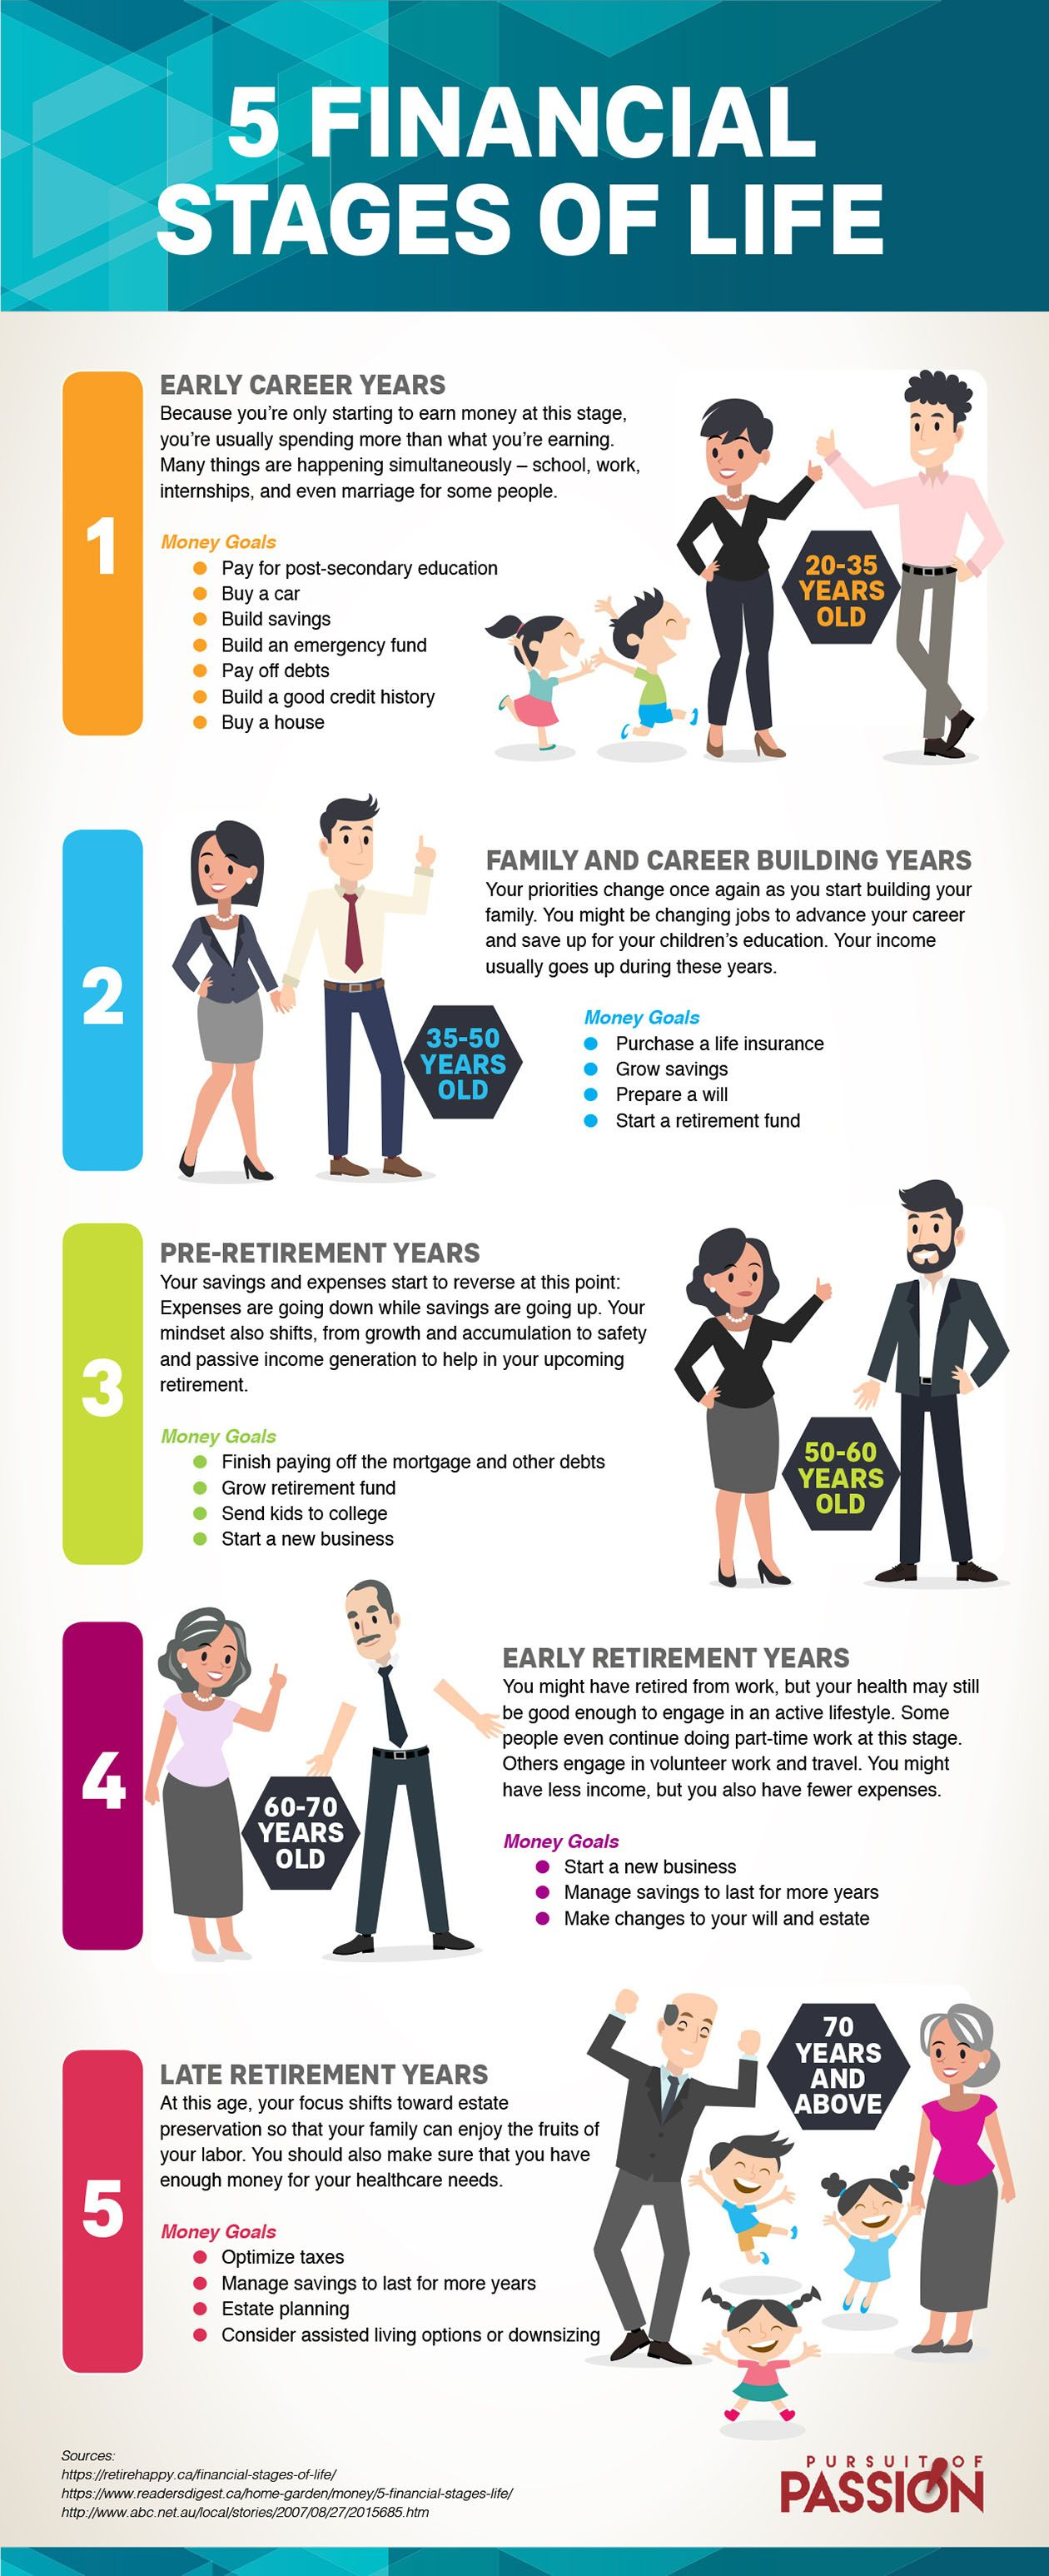 Your Financial Goals For The 5 Stages Of Life Financial Goals